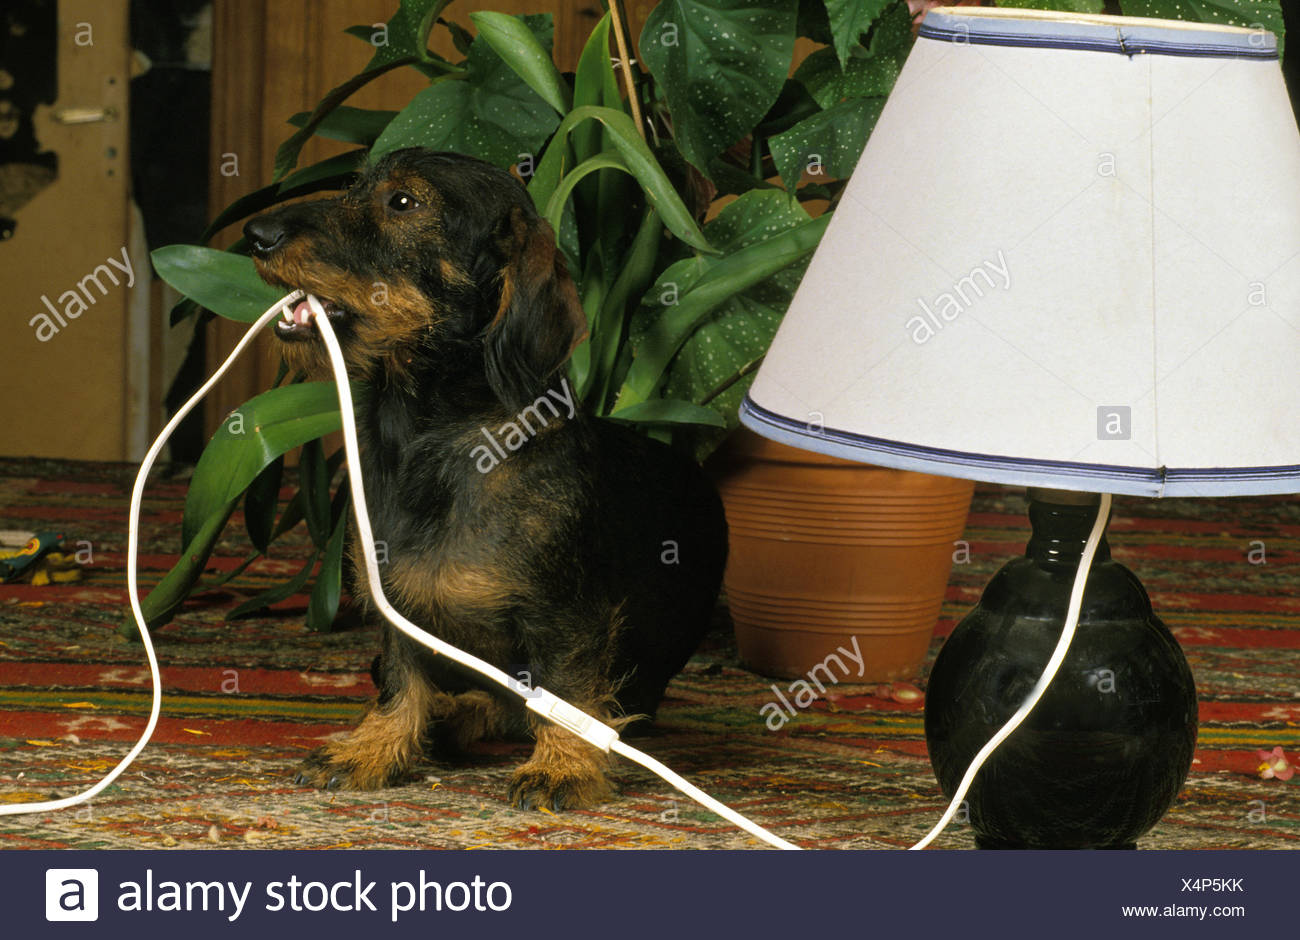 WIRE-HAIRED DACHSHUND CHEWING ELECTRIC CABLE Stock Photo: 278311927 ...